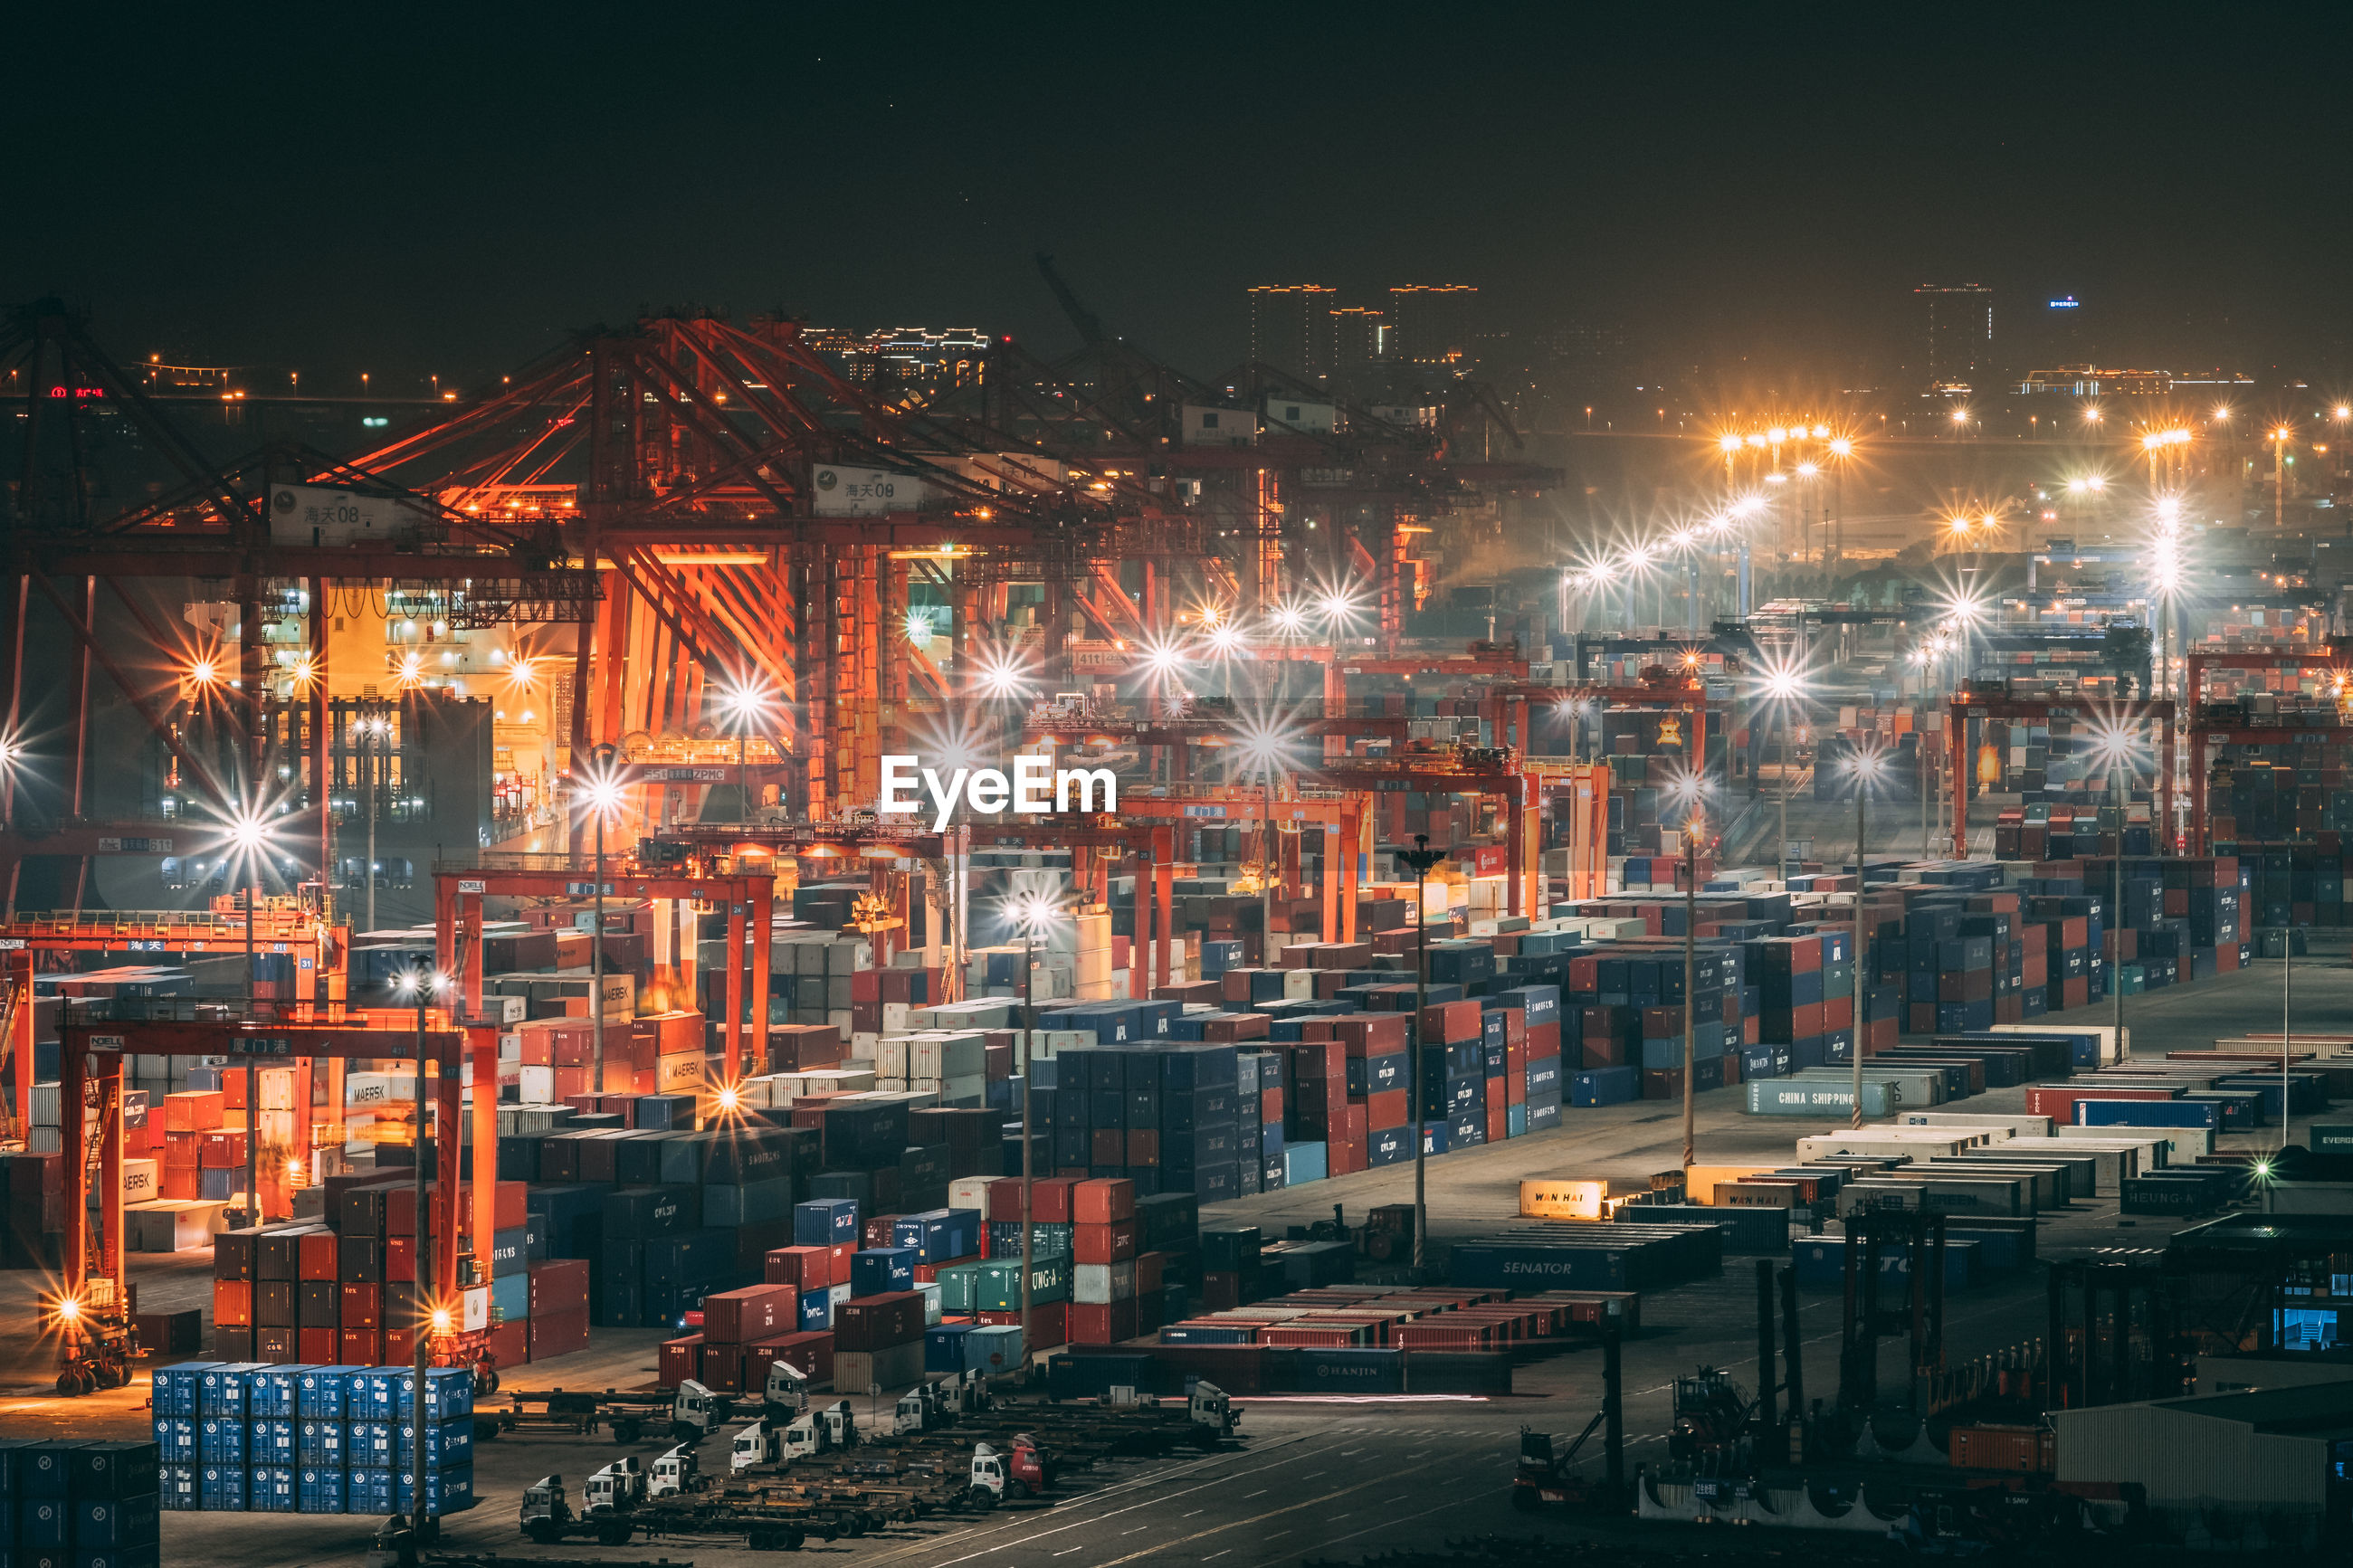 Cargo containers at commercial dock at night